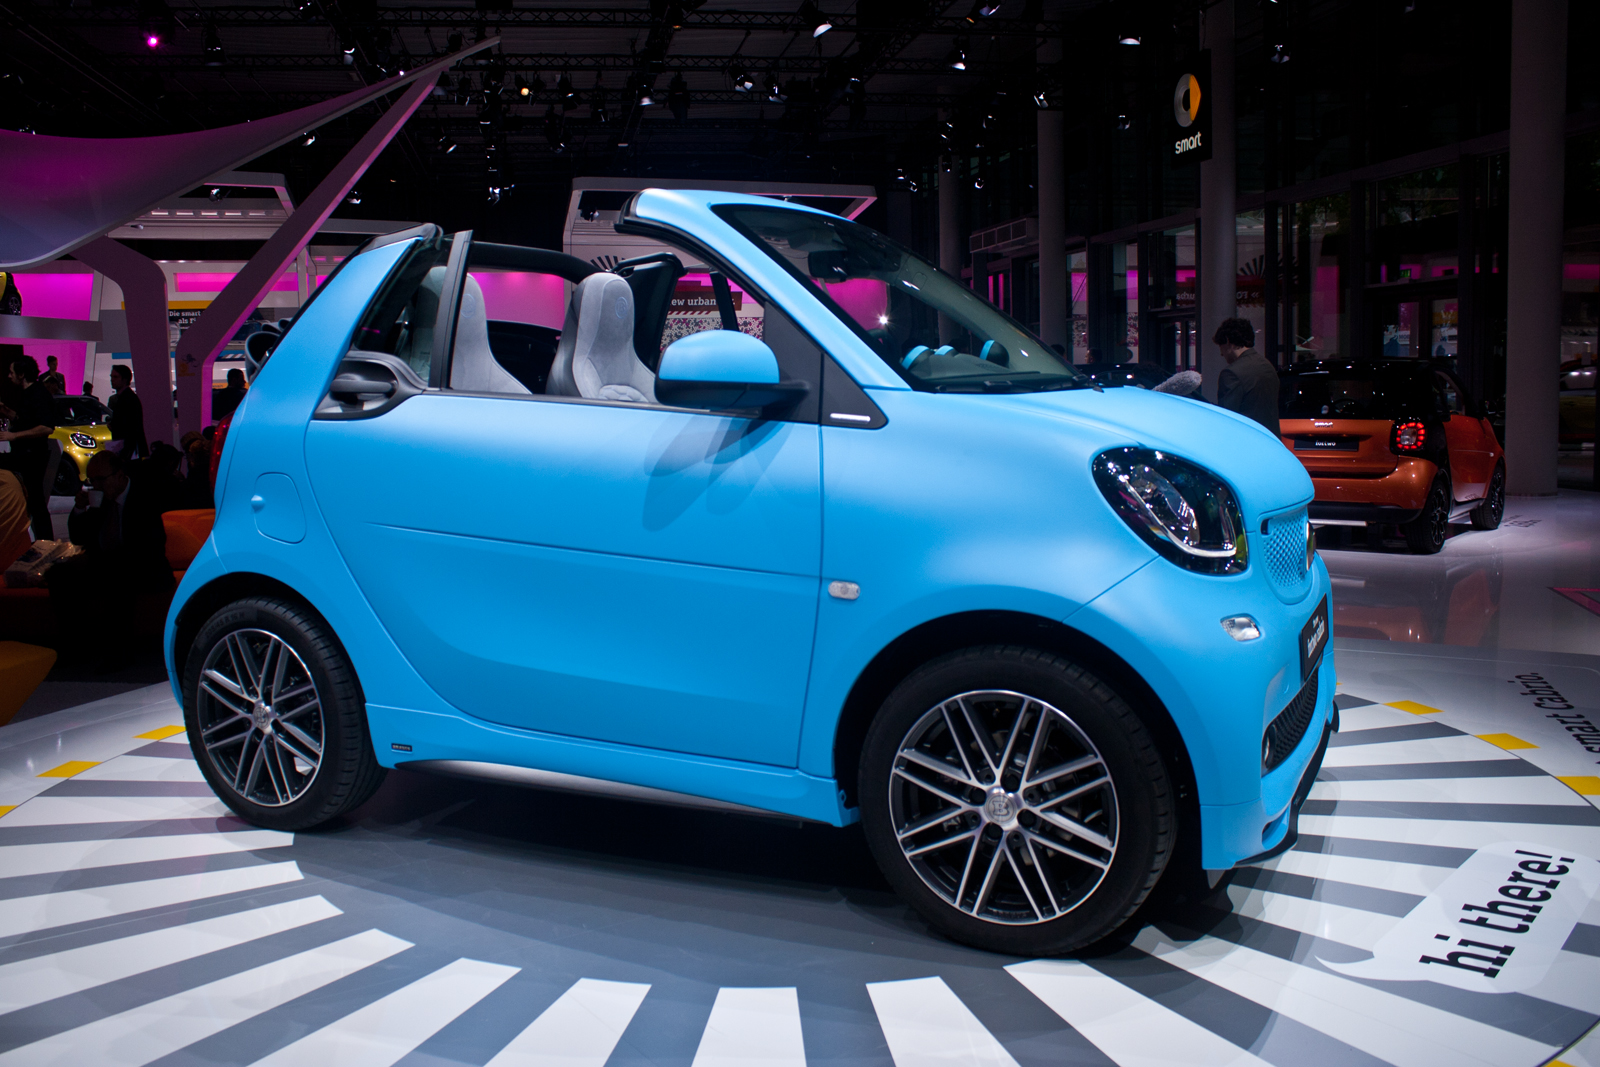 2016 Smart Fortwo Cabrio Unveiled Makes Debut at Frankfurt Motor